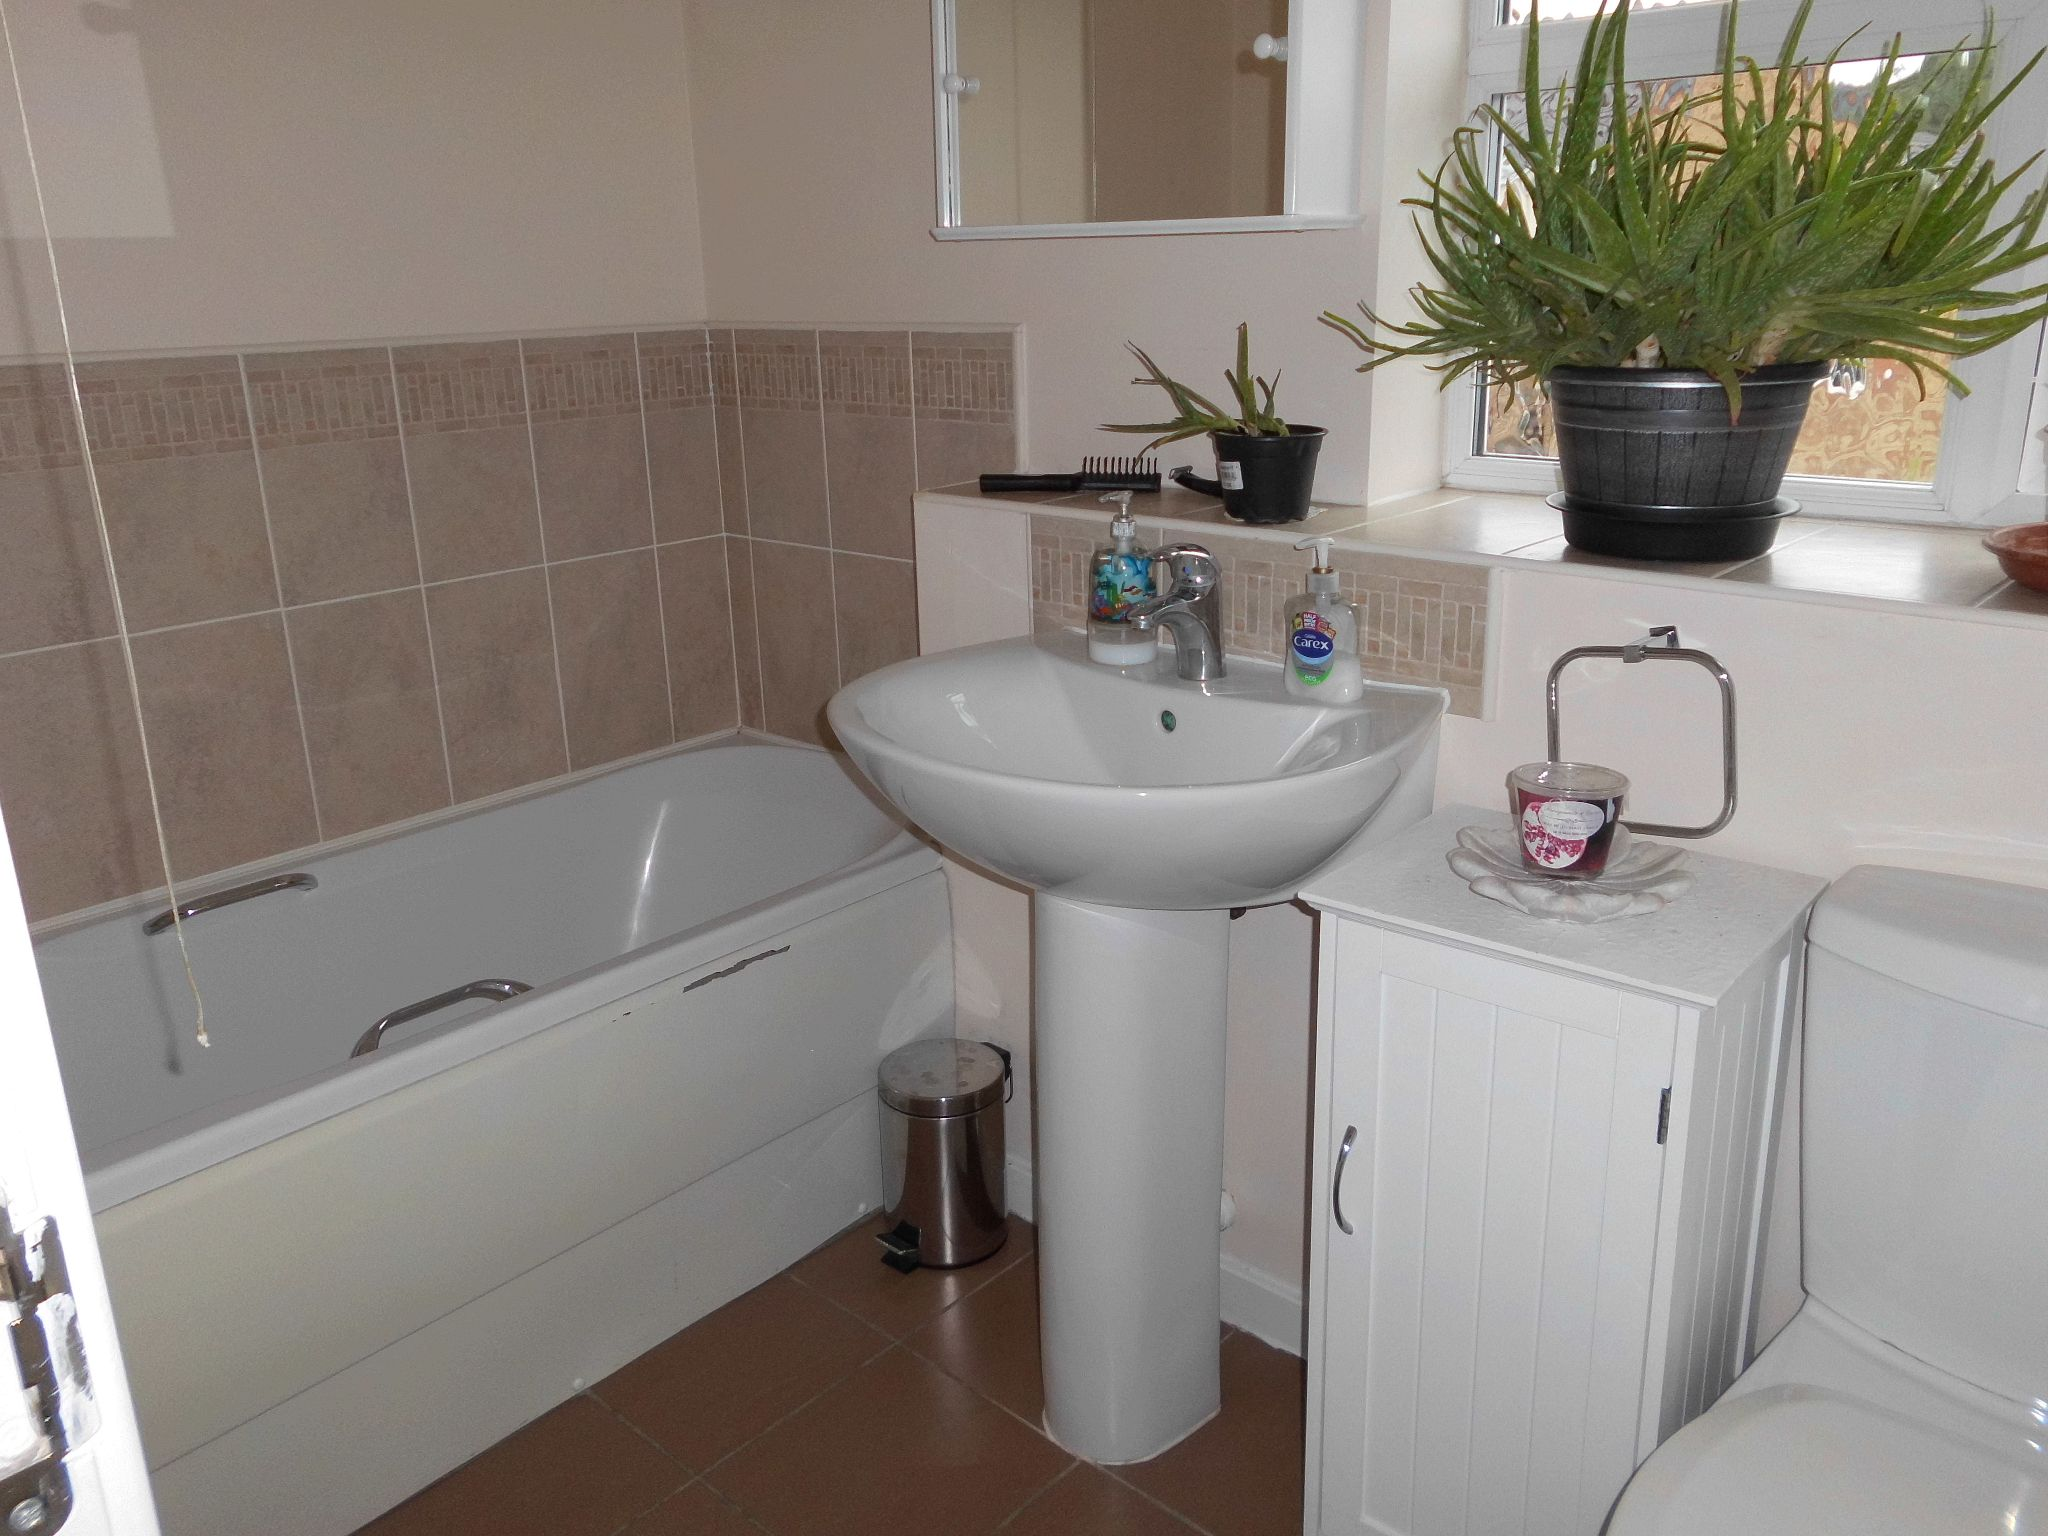 4 bedroom detached house SSTC in Leicester - Photograph 14.